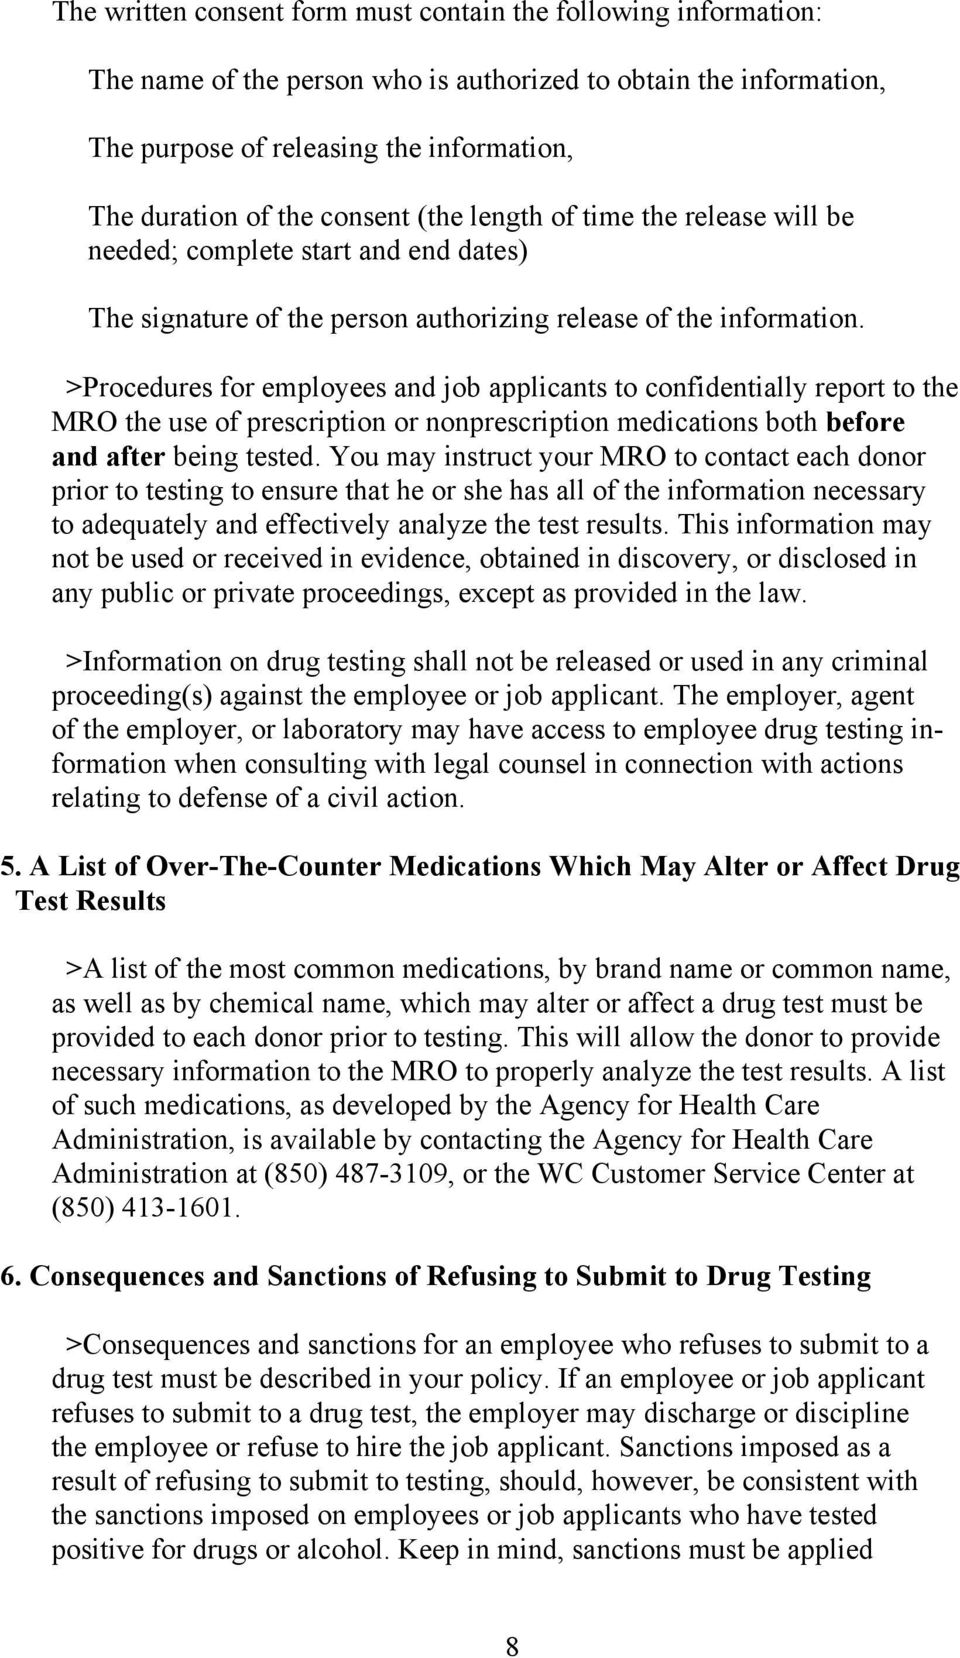 >Procedures for employees and job applicants to confidentially report to the MRO the use of prescription or nonprescription medications both before and after being tested.